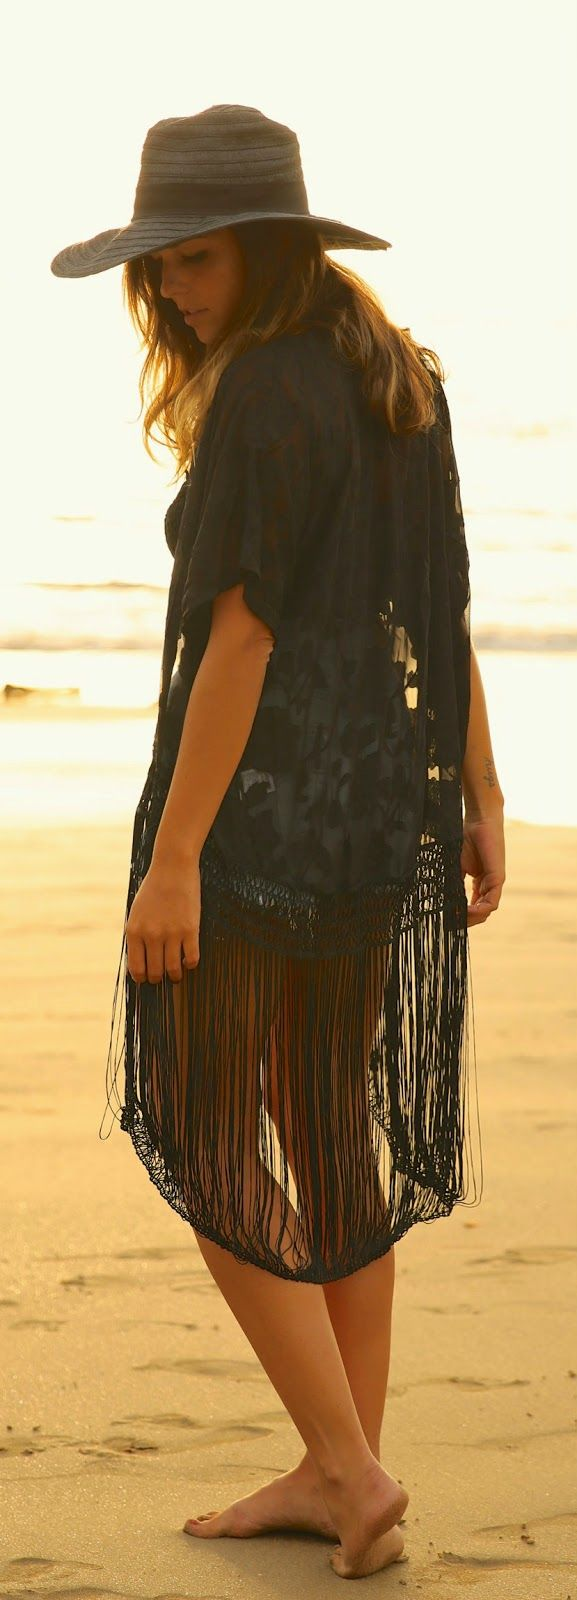 Everyday New Fashion: Lace In Sunset by TrendyTaste